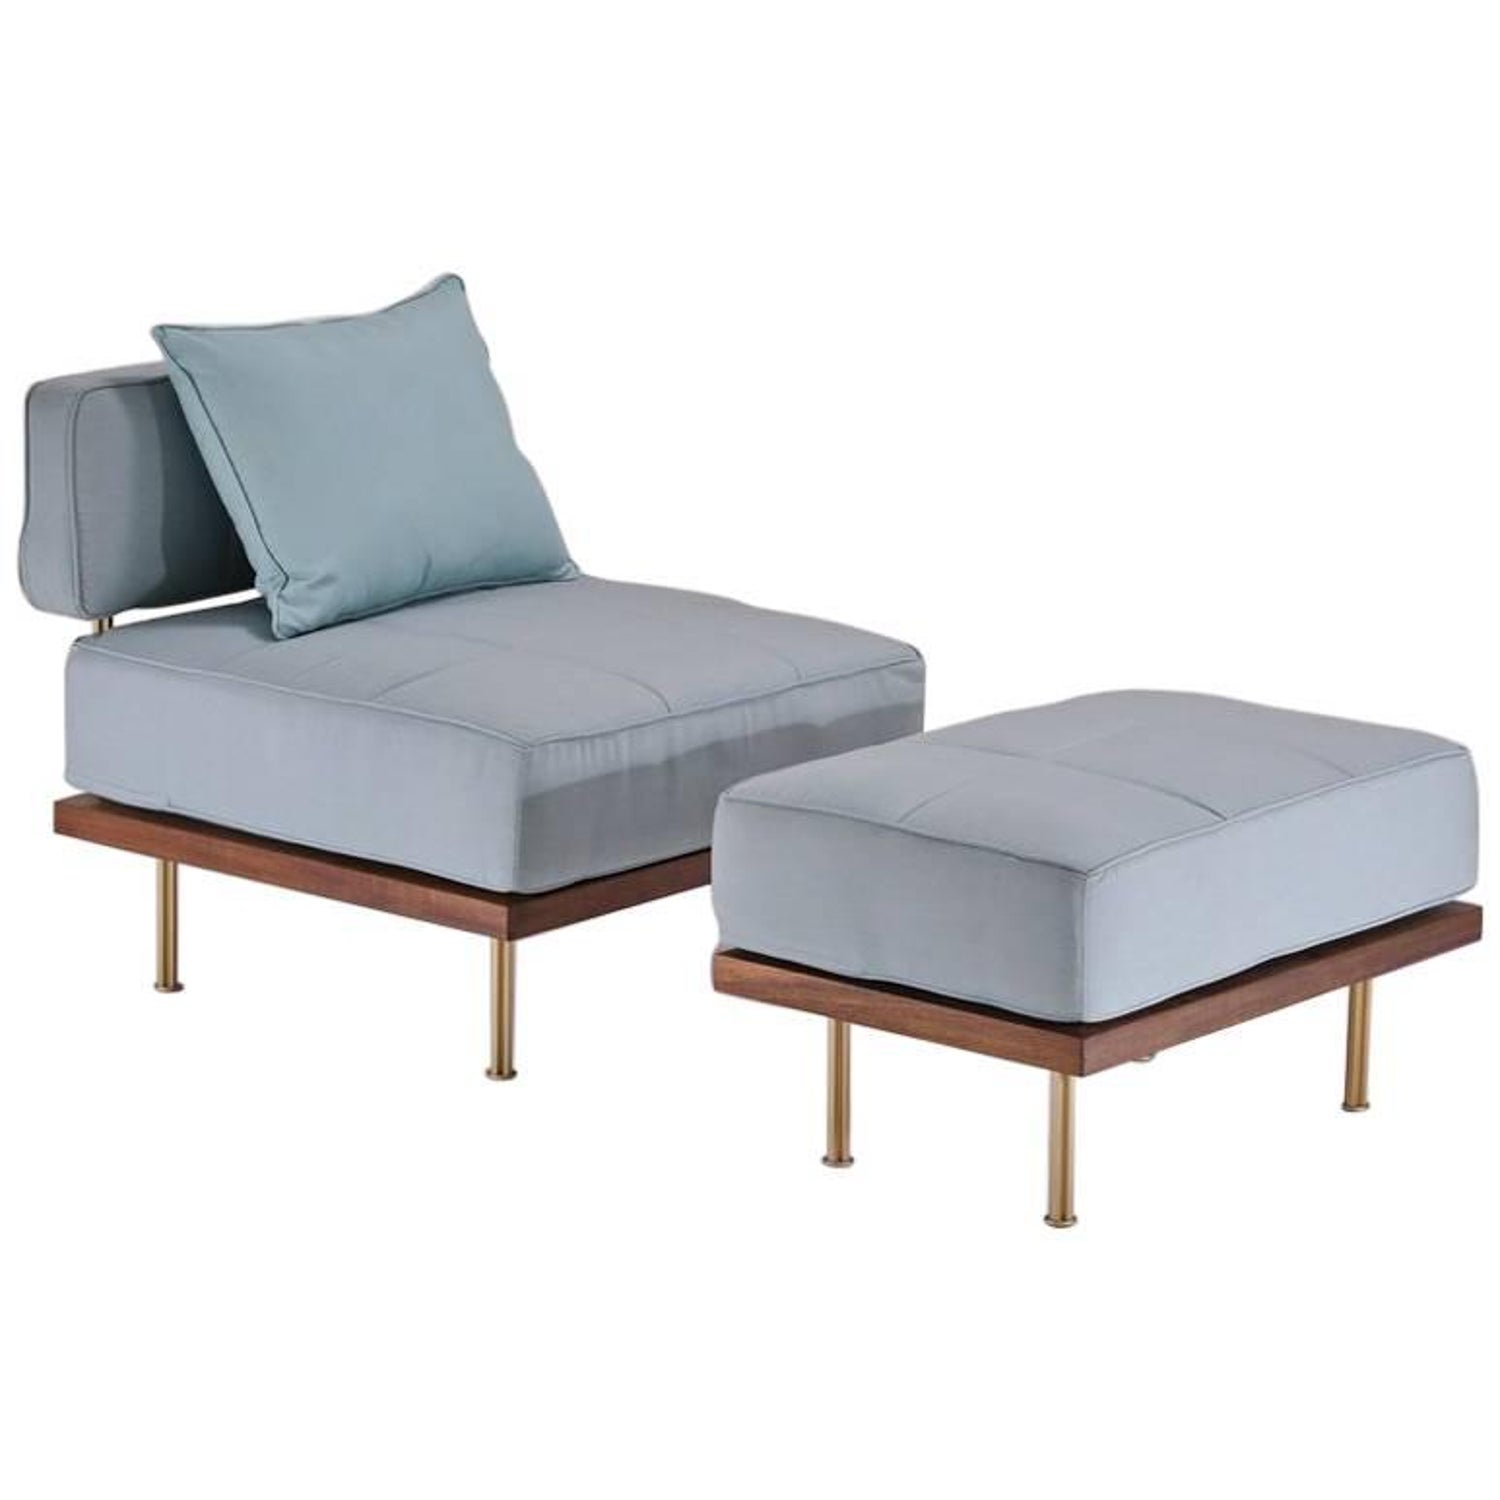 Bespoke Outdoor Lounge Chair And Ottoman Reclaimed Hardwood By P Tendercool For At 1stdibs